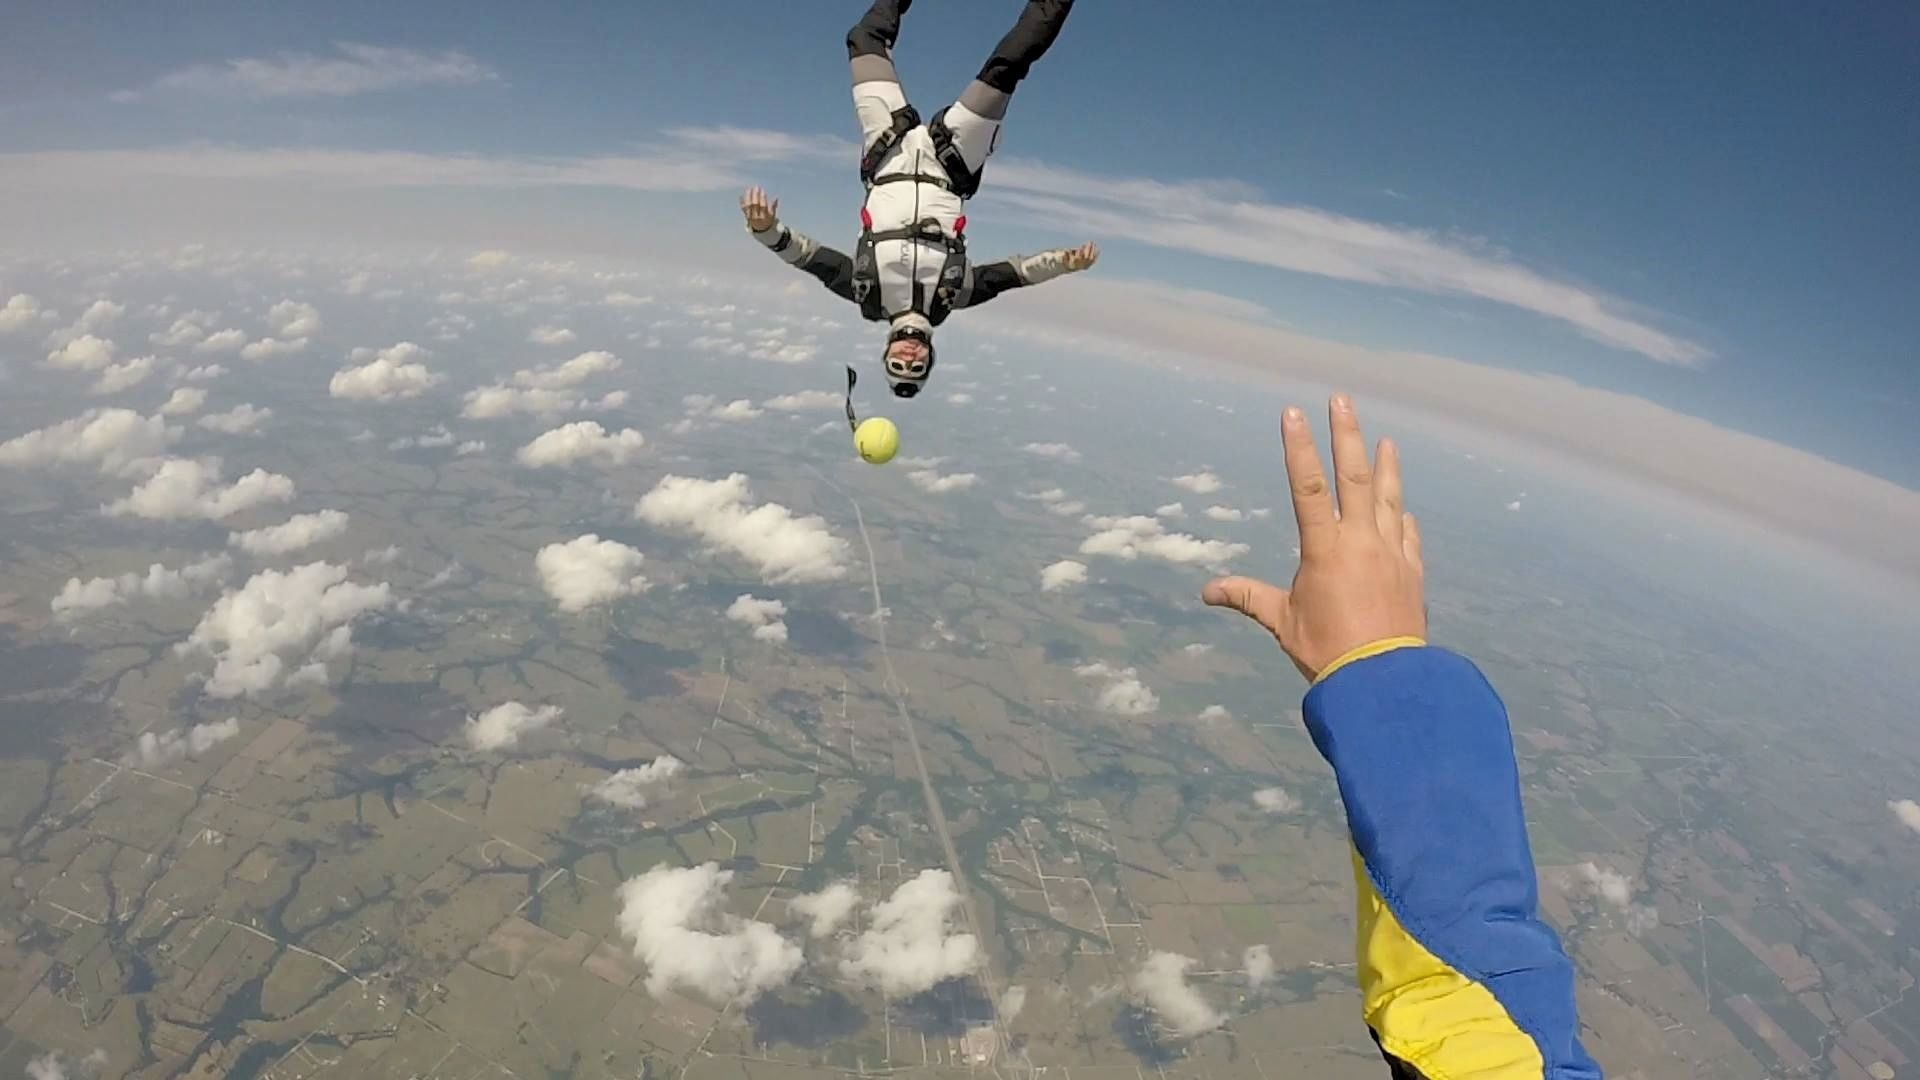 Xtreme Skydiving Puerto Rico